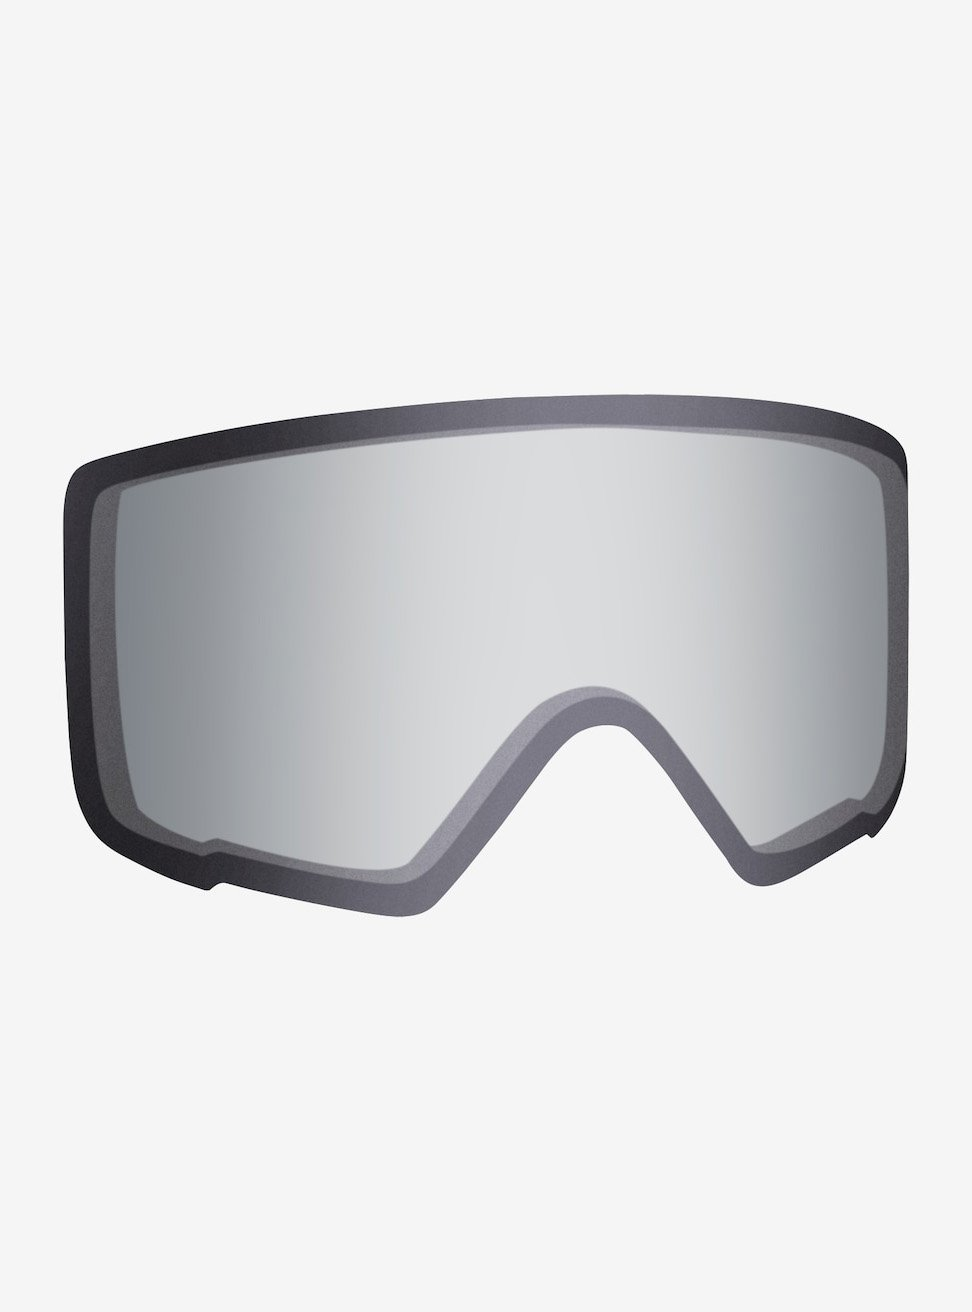 Anon M3 Goggle Lens (Multiple Color Options)